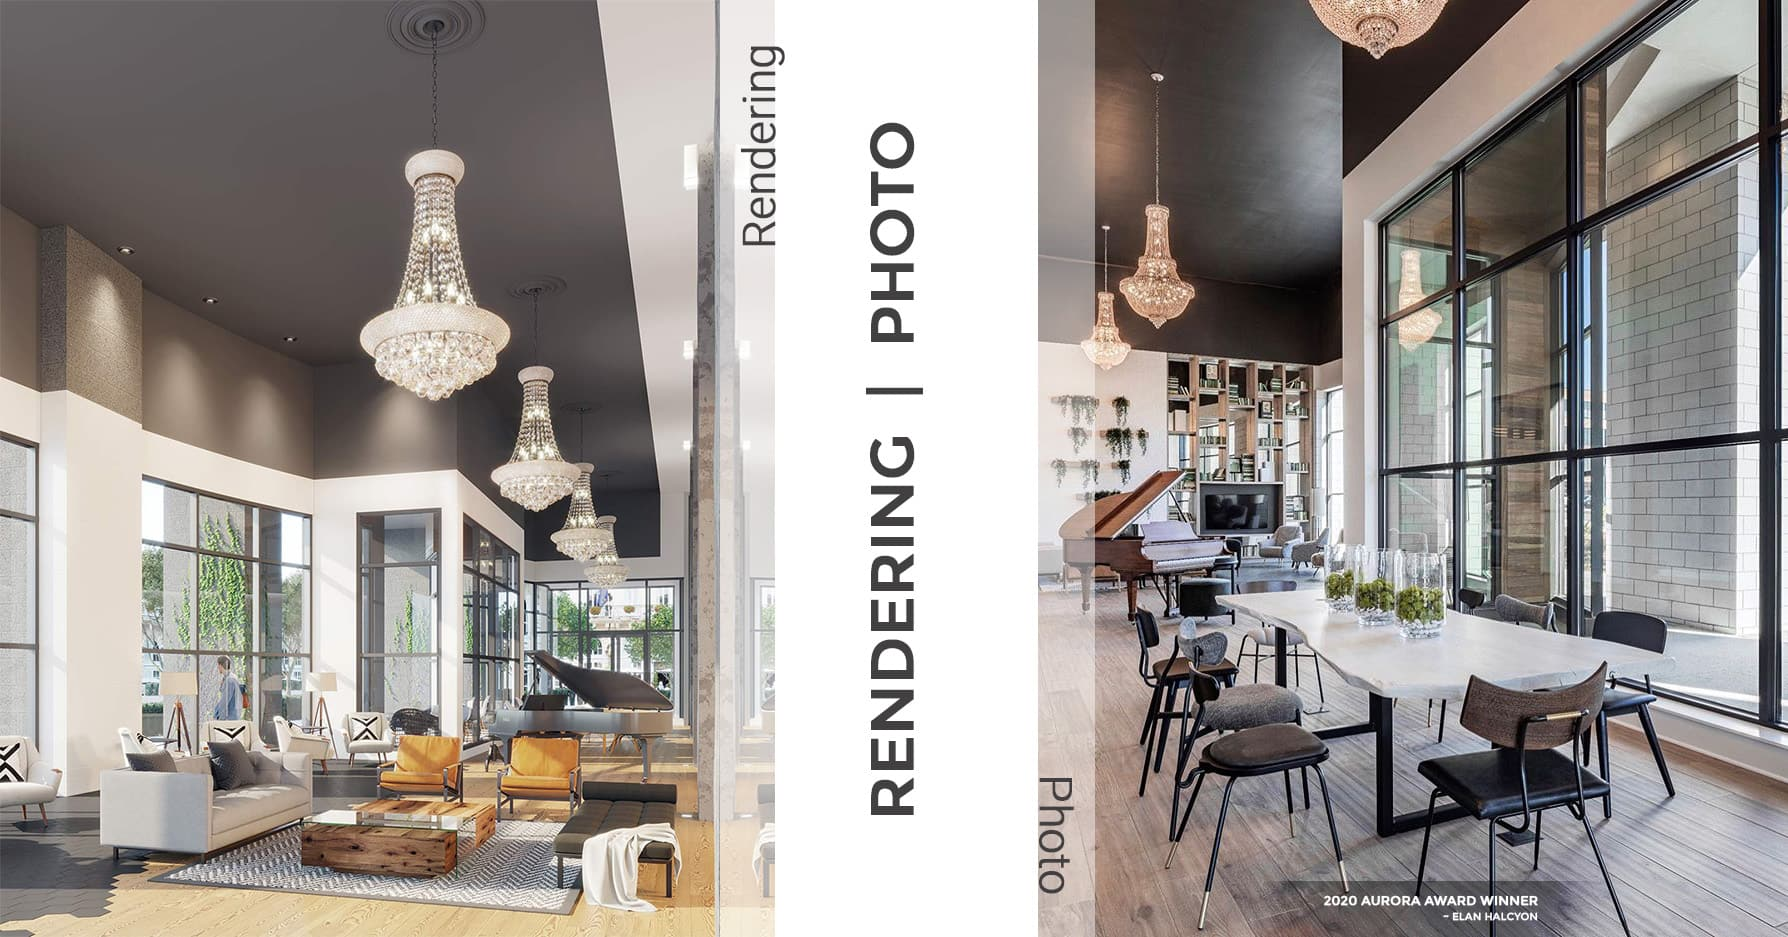 3D Rendering vs photo comparison of Halcyon's lobby area. Award-winning project is located in Alpharetta, Georgia